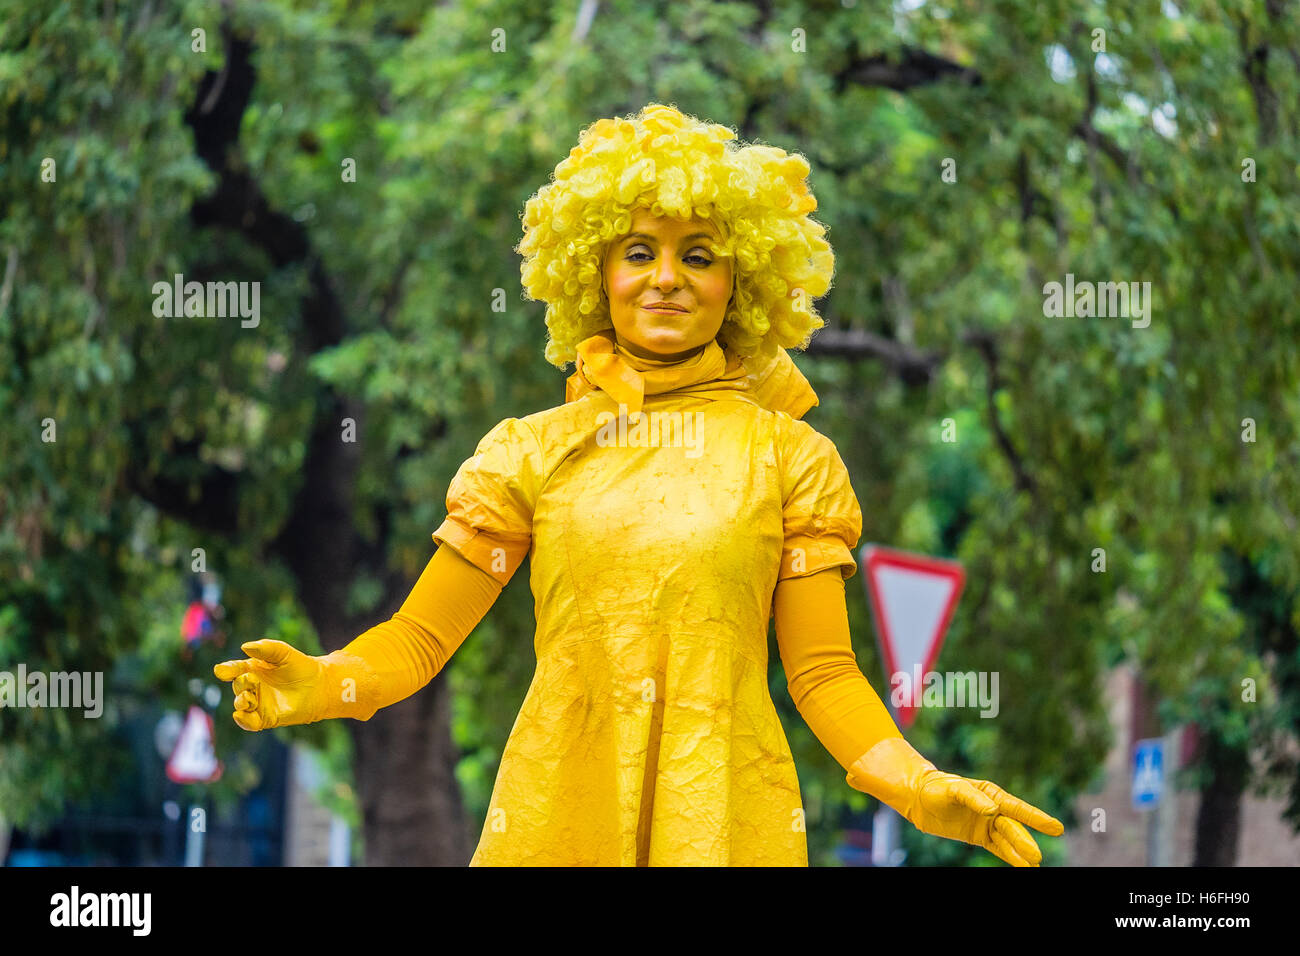 Image result for dressed in yellow